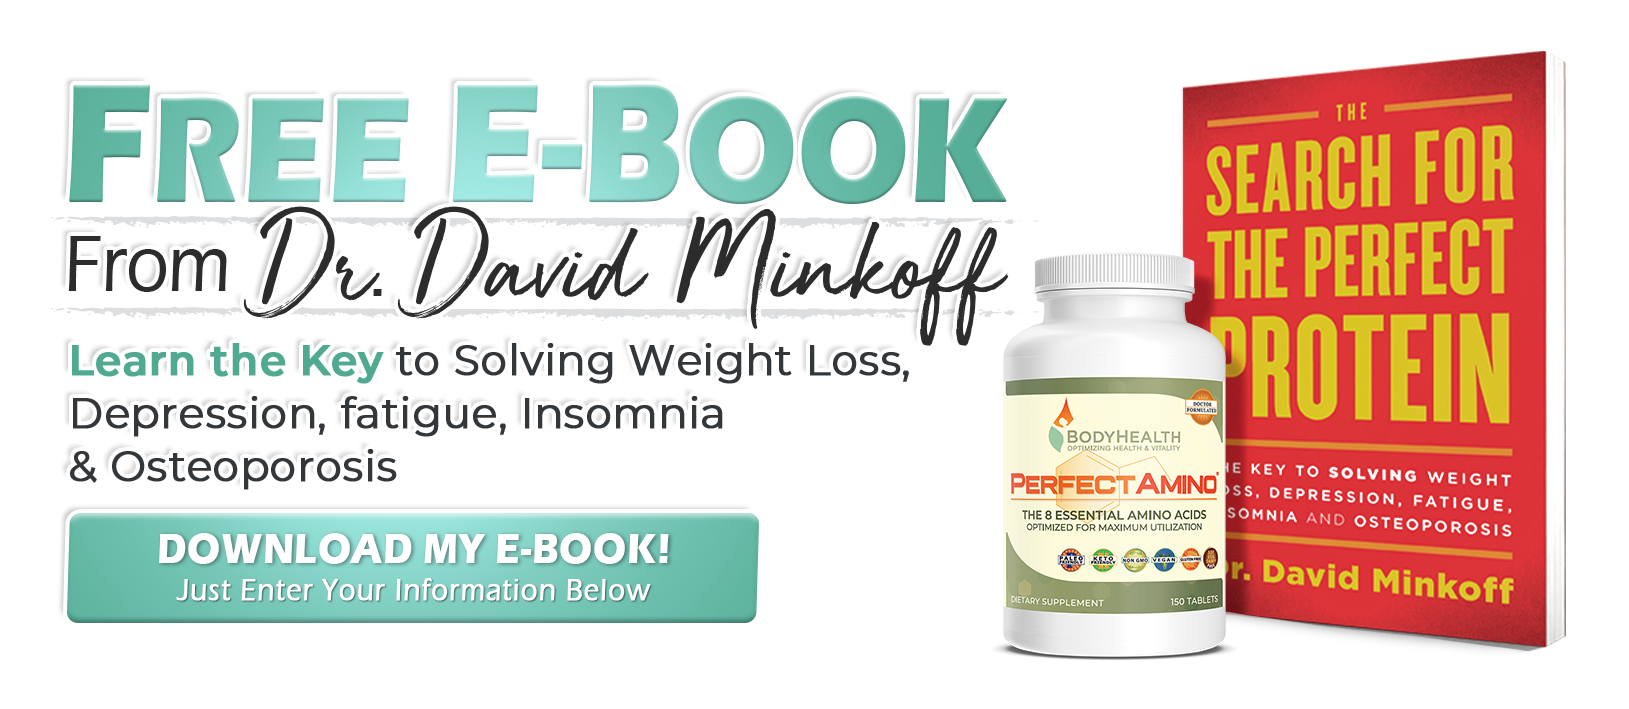 Get a FREE digital download of Dr. Minkoff's book, The Search for the Perfect Protein! Just sign up for the BodyHealth Newsletter below.